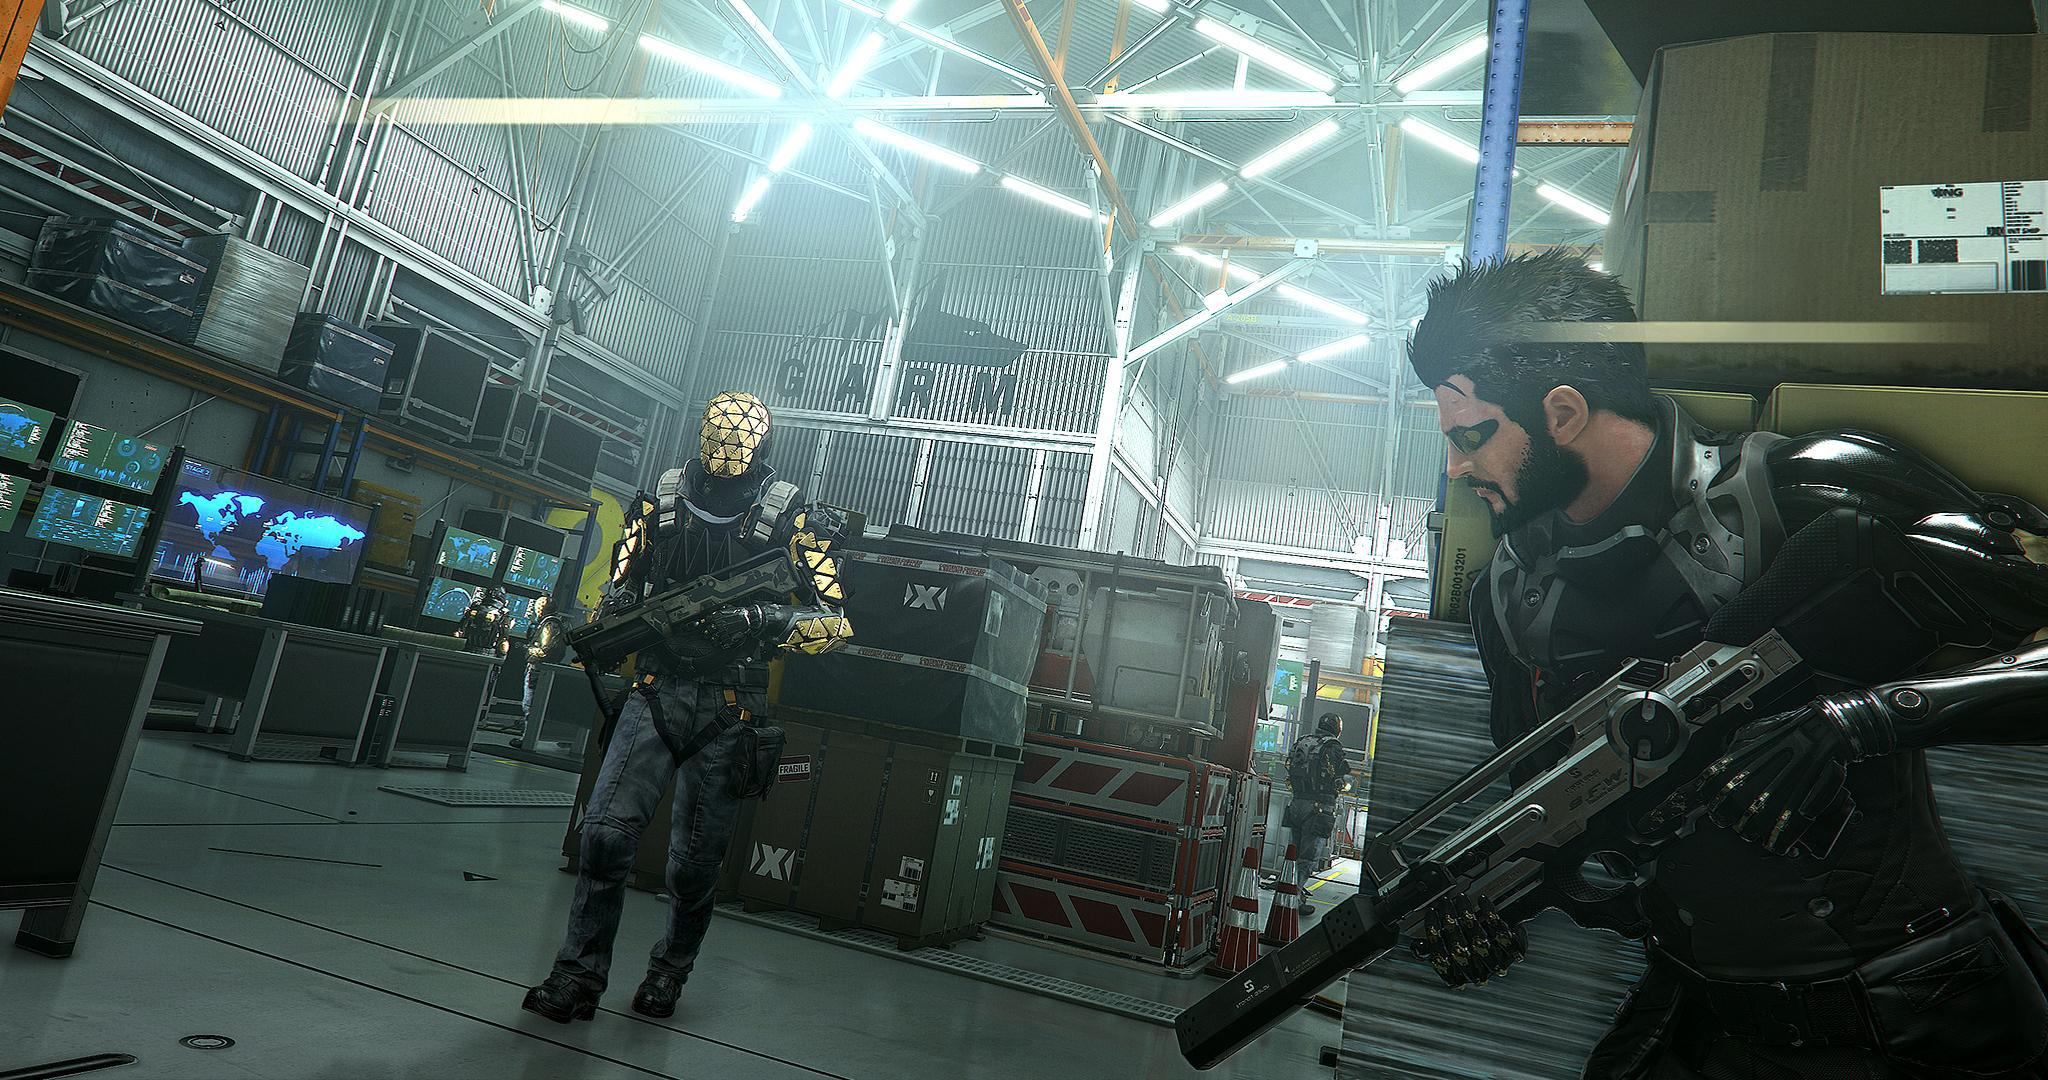 deus ex mankind divided analise critica review inimigos